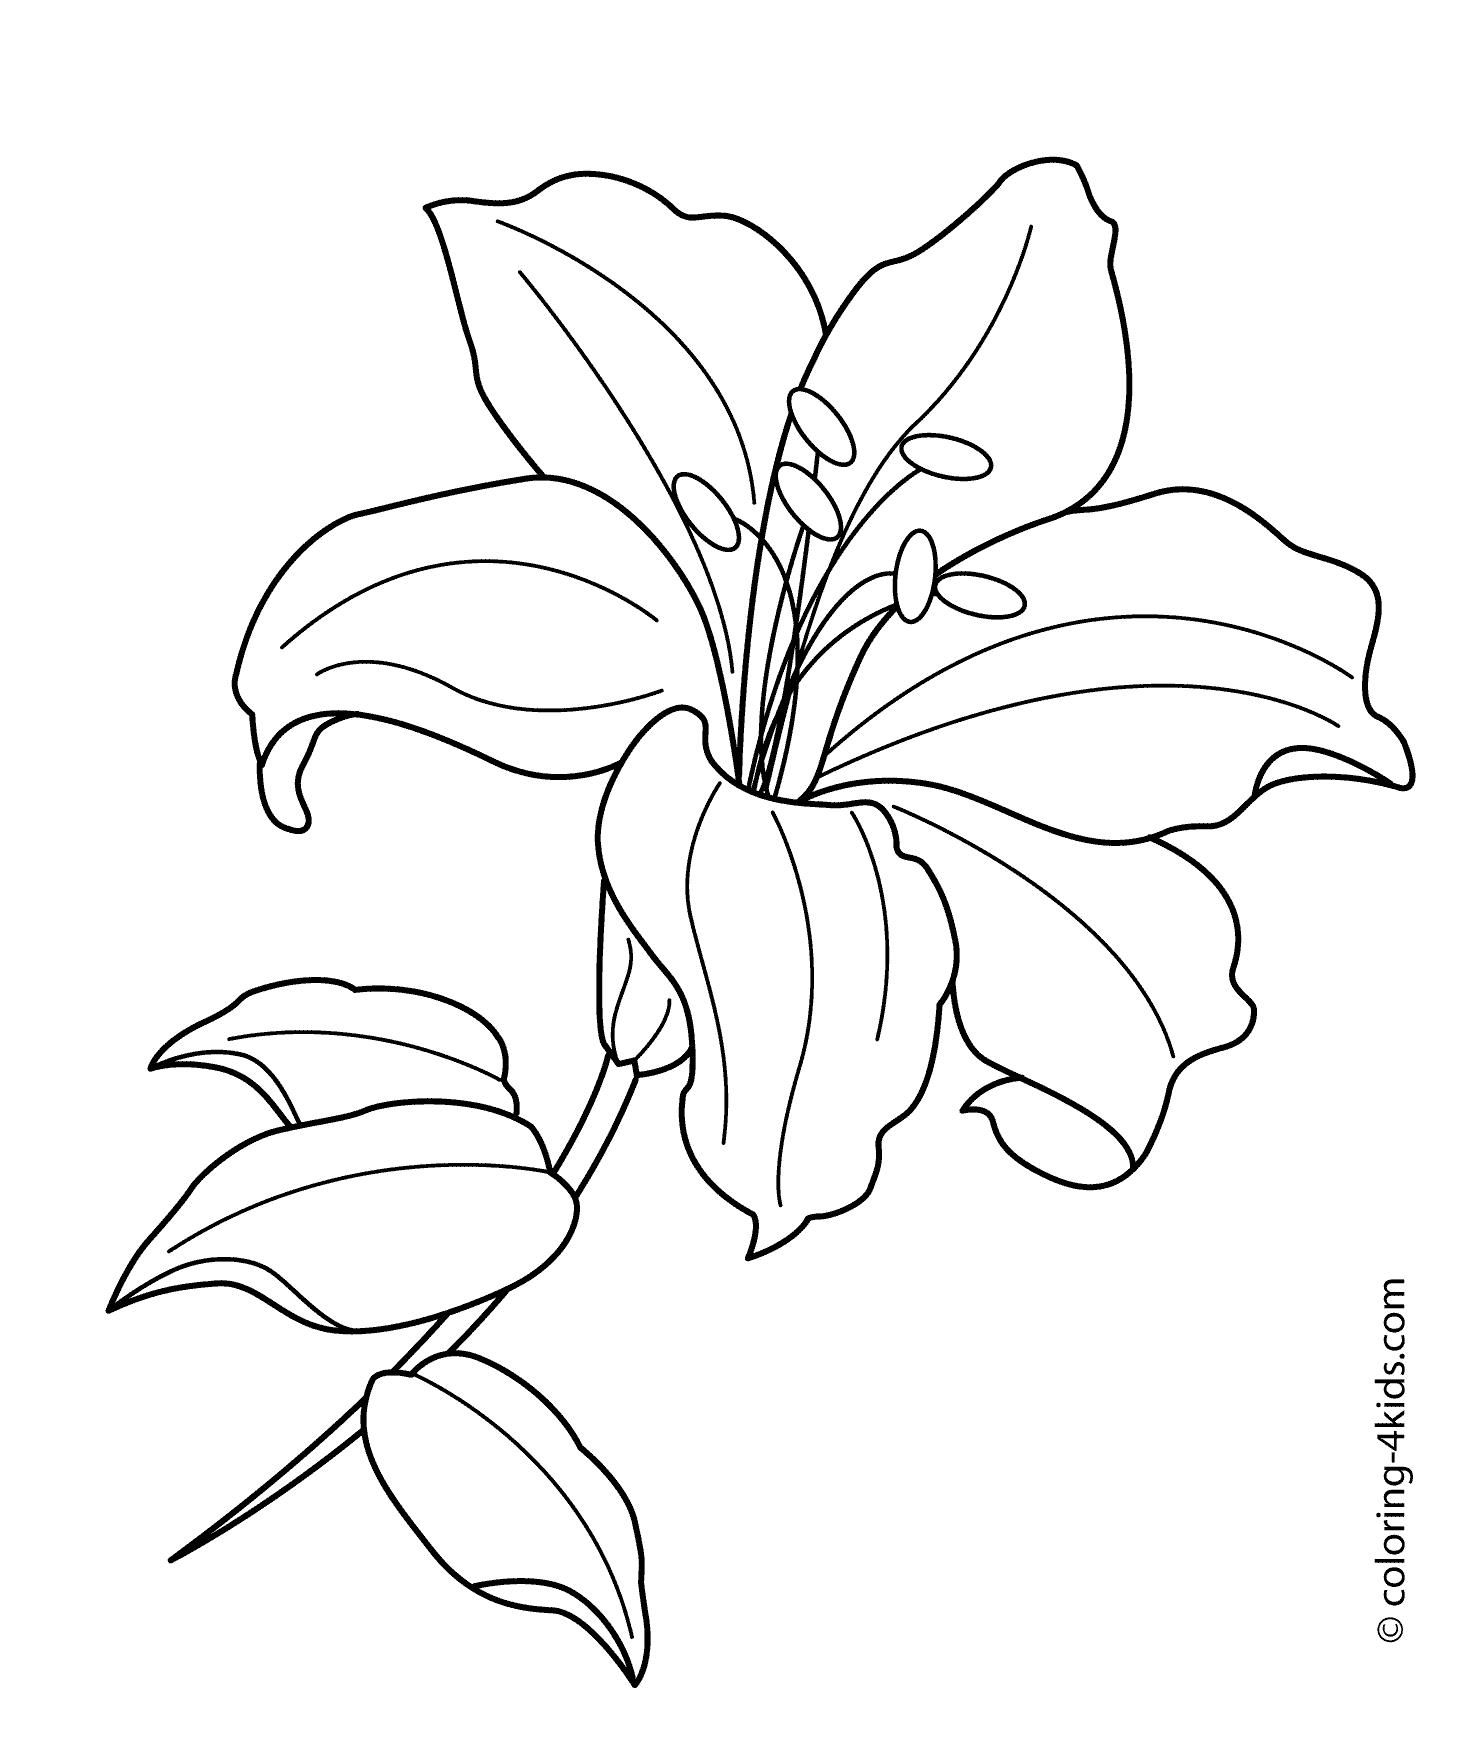 1483x1764 Coloring Pages Lily Flower Coloring Page Fun